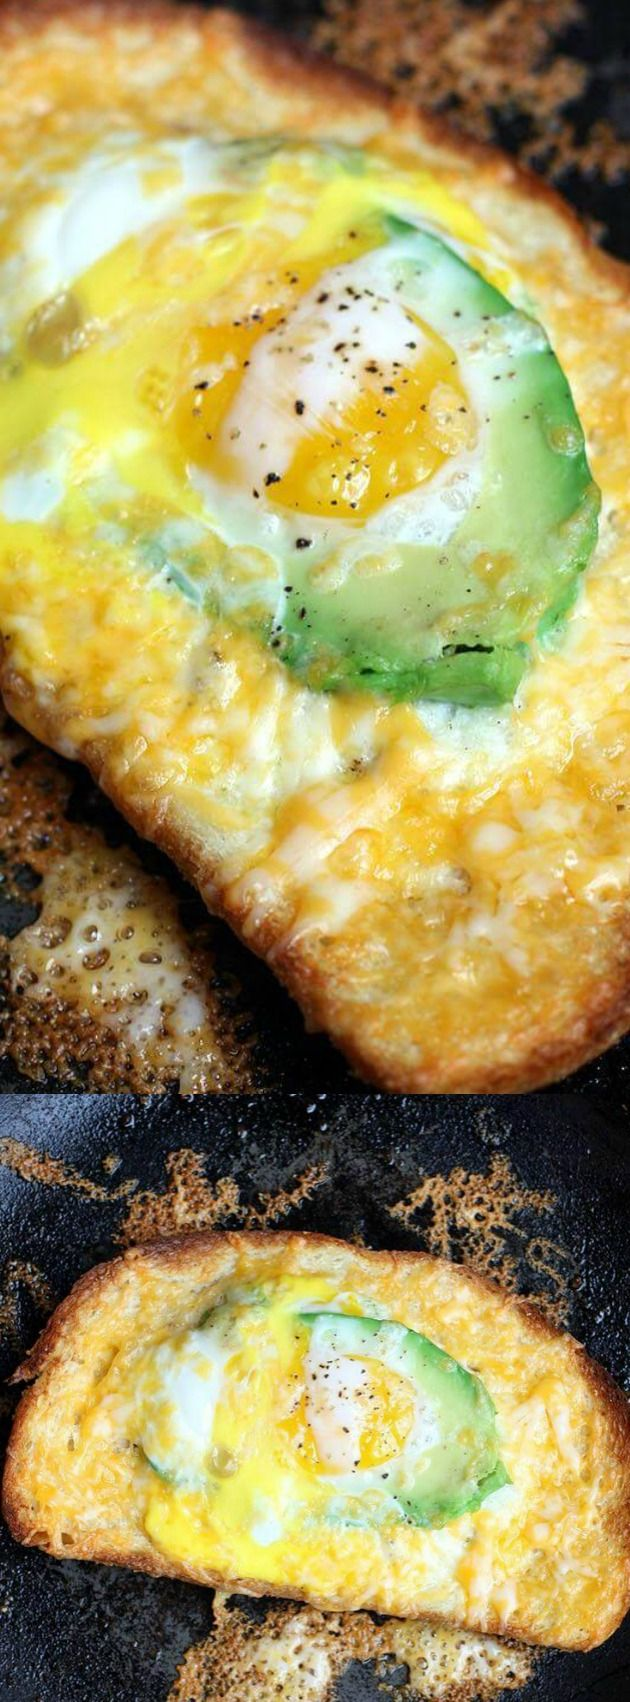 This Avocado and Egg in a Hole Toast from Tastes Better from Scratch makes the perfect Saturday morning breakfast for your family! It's perfect when you want something hot, cheesy, and totally delicious to eat.